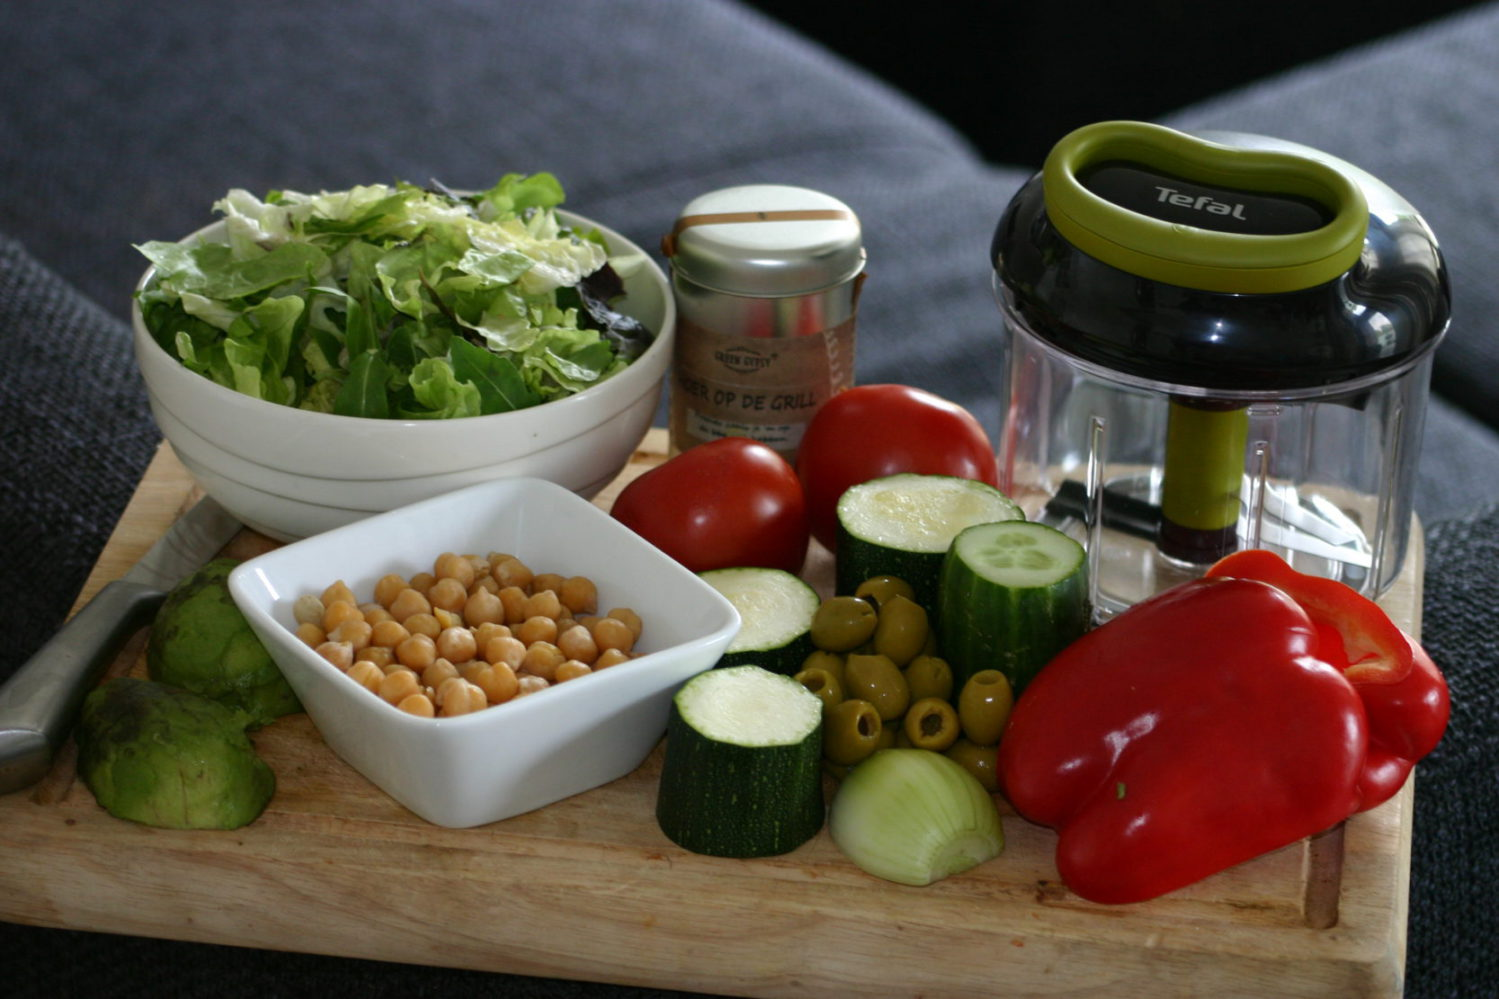 tefal 5-second-chopper hakmolen recept